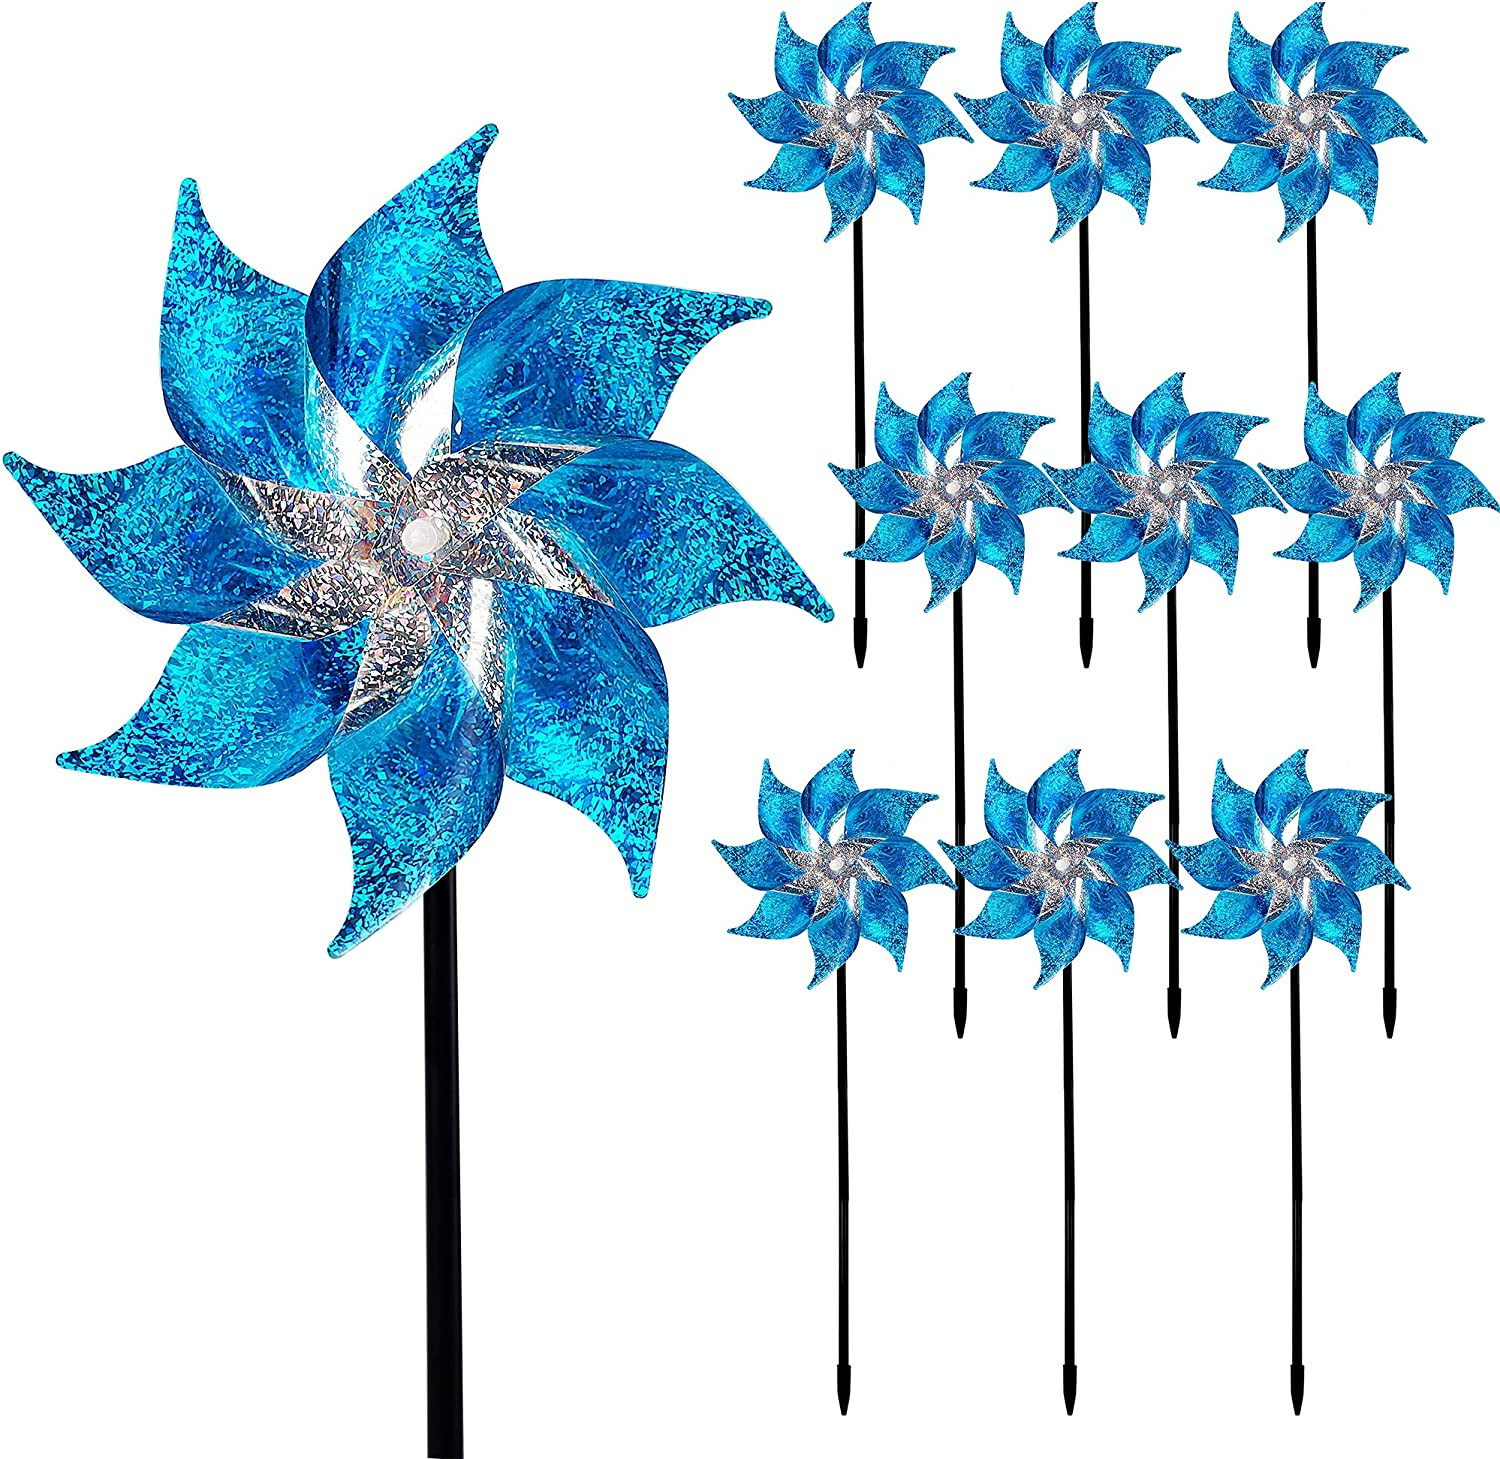 Hausse 10 Pack Reflective Pinwheels with Stakes, Extra Sparkly Pin Wheel for Garden Decor, Bird Repellent Devices Deterrent to Scare Birds Away from Yard Patio Farm, Blue